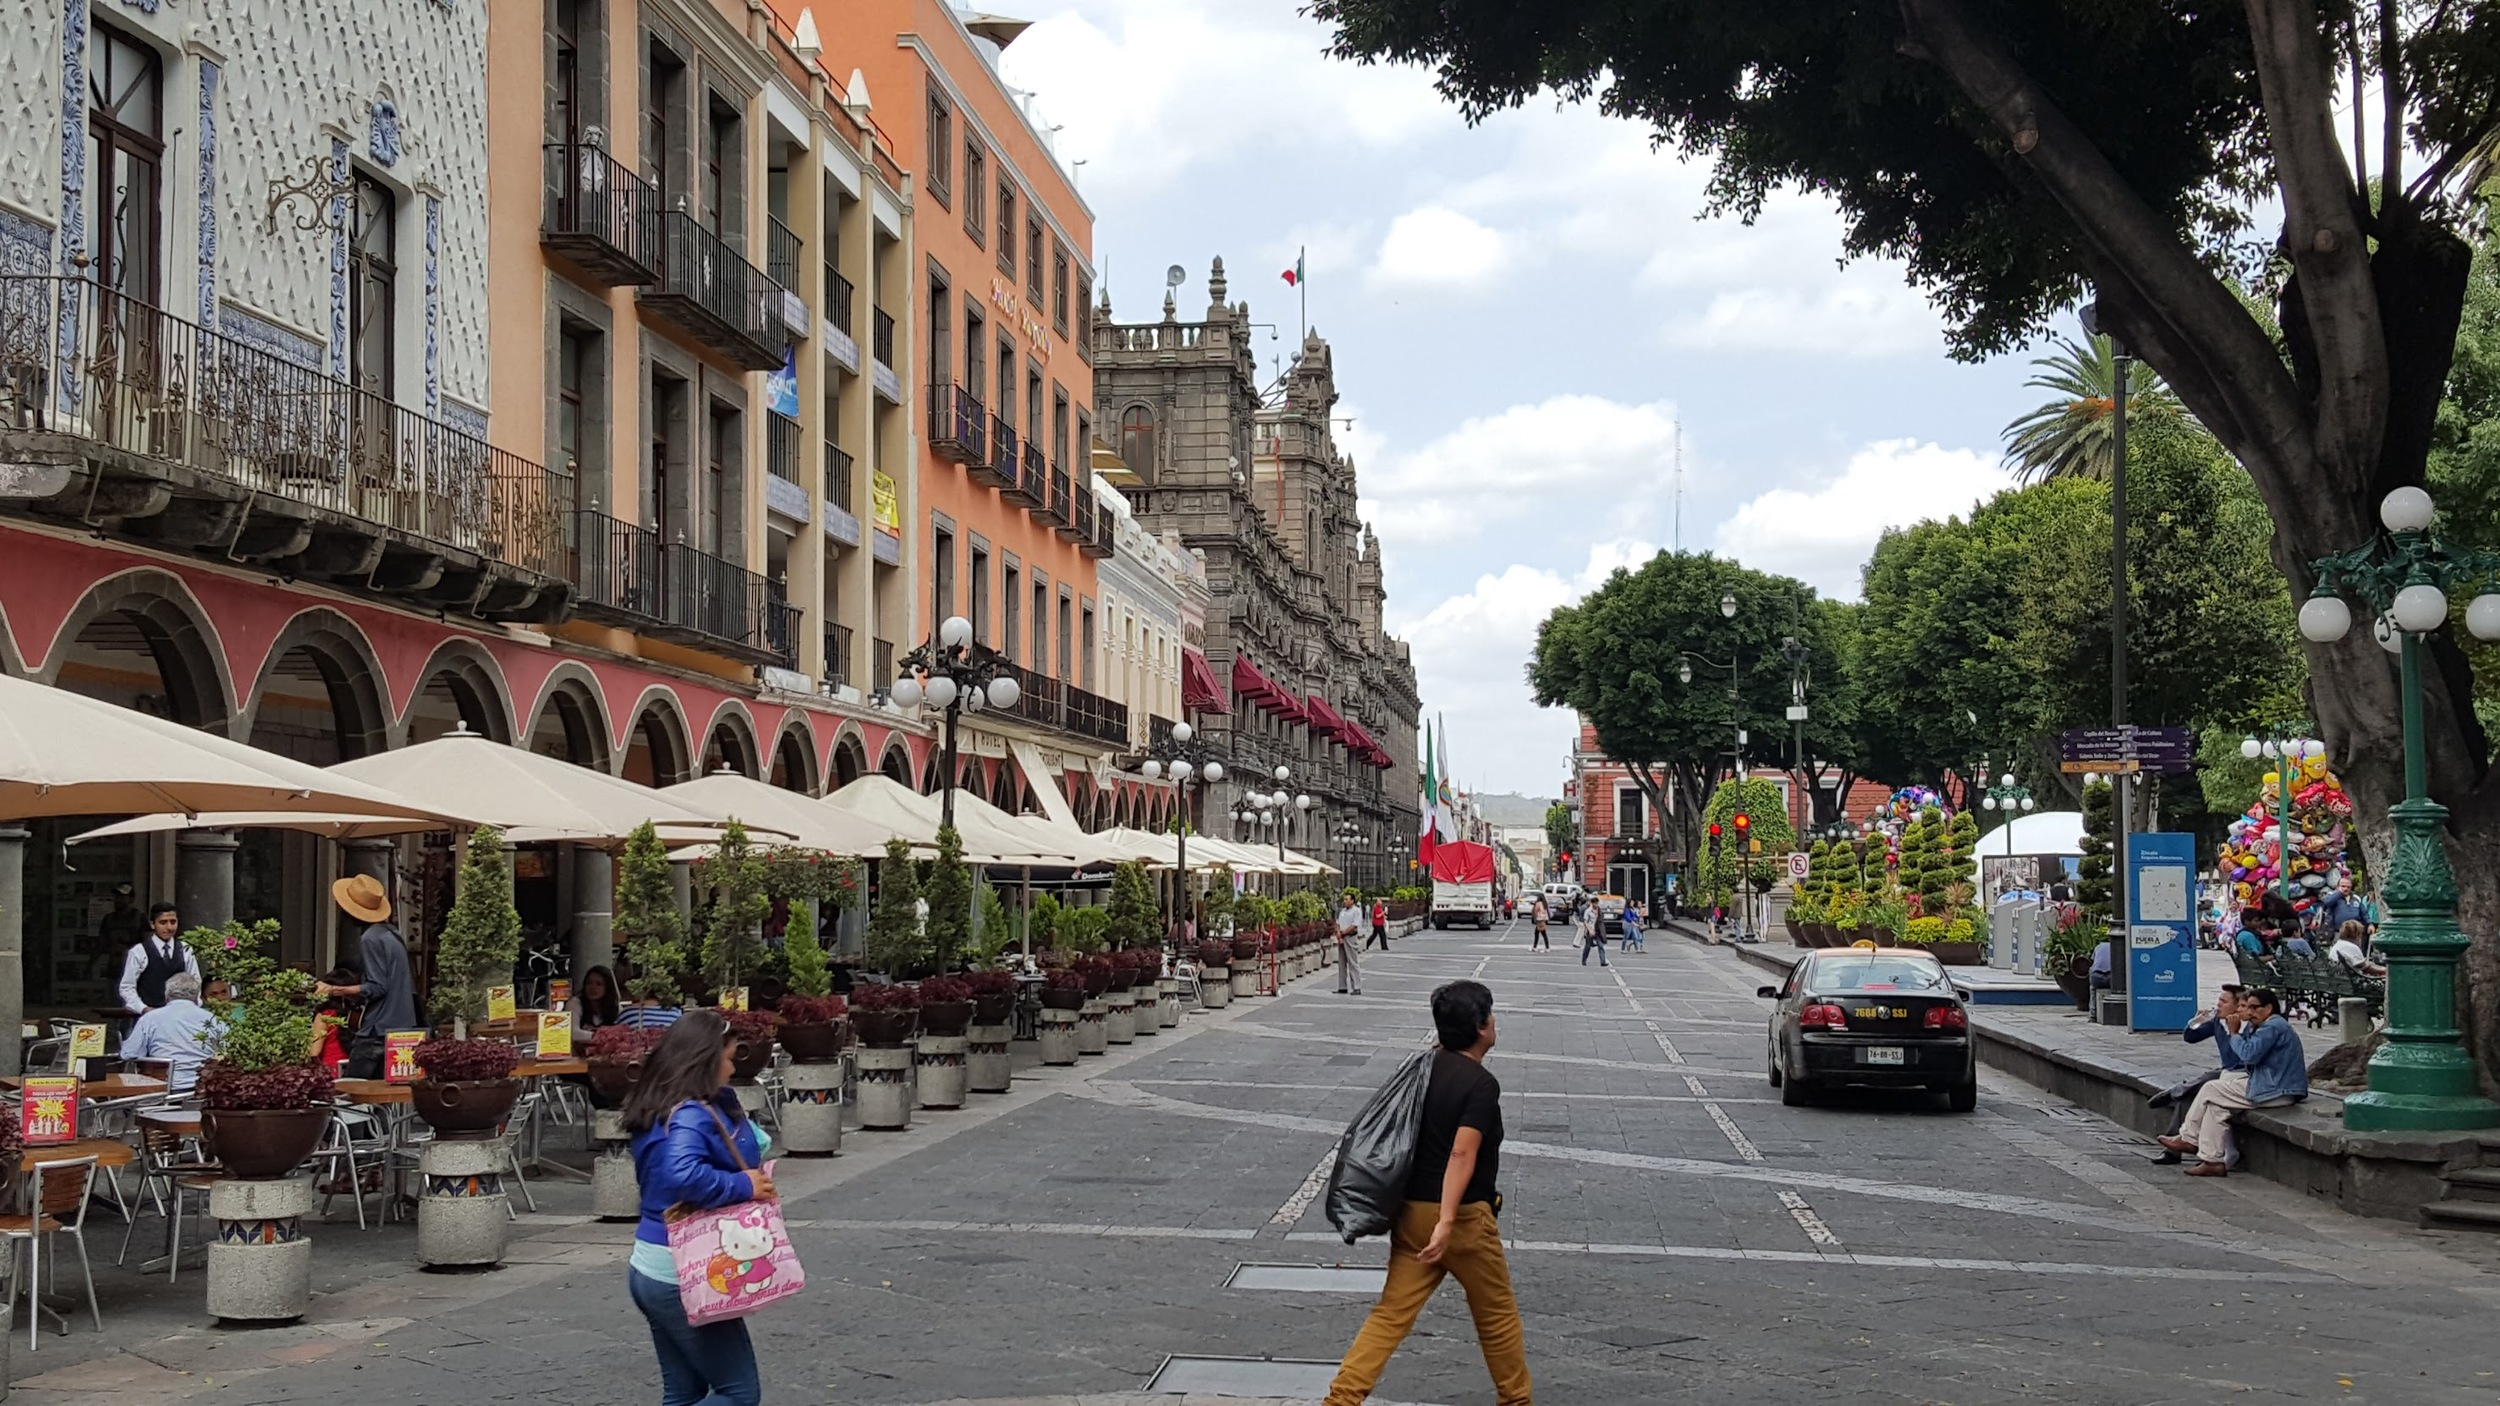 Jaywalking in Puebla. Nobody cares. Maybe there is some secret here I am missing